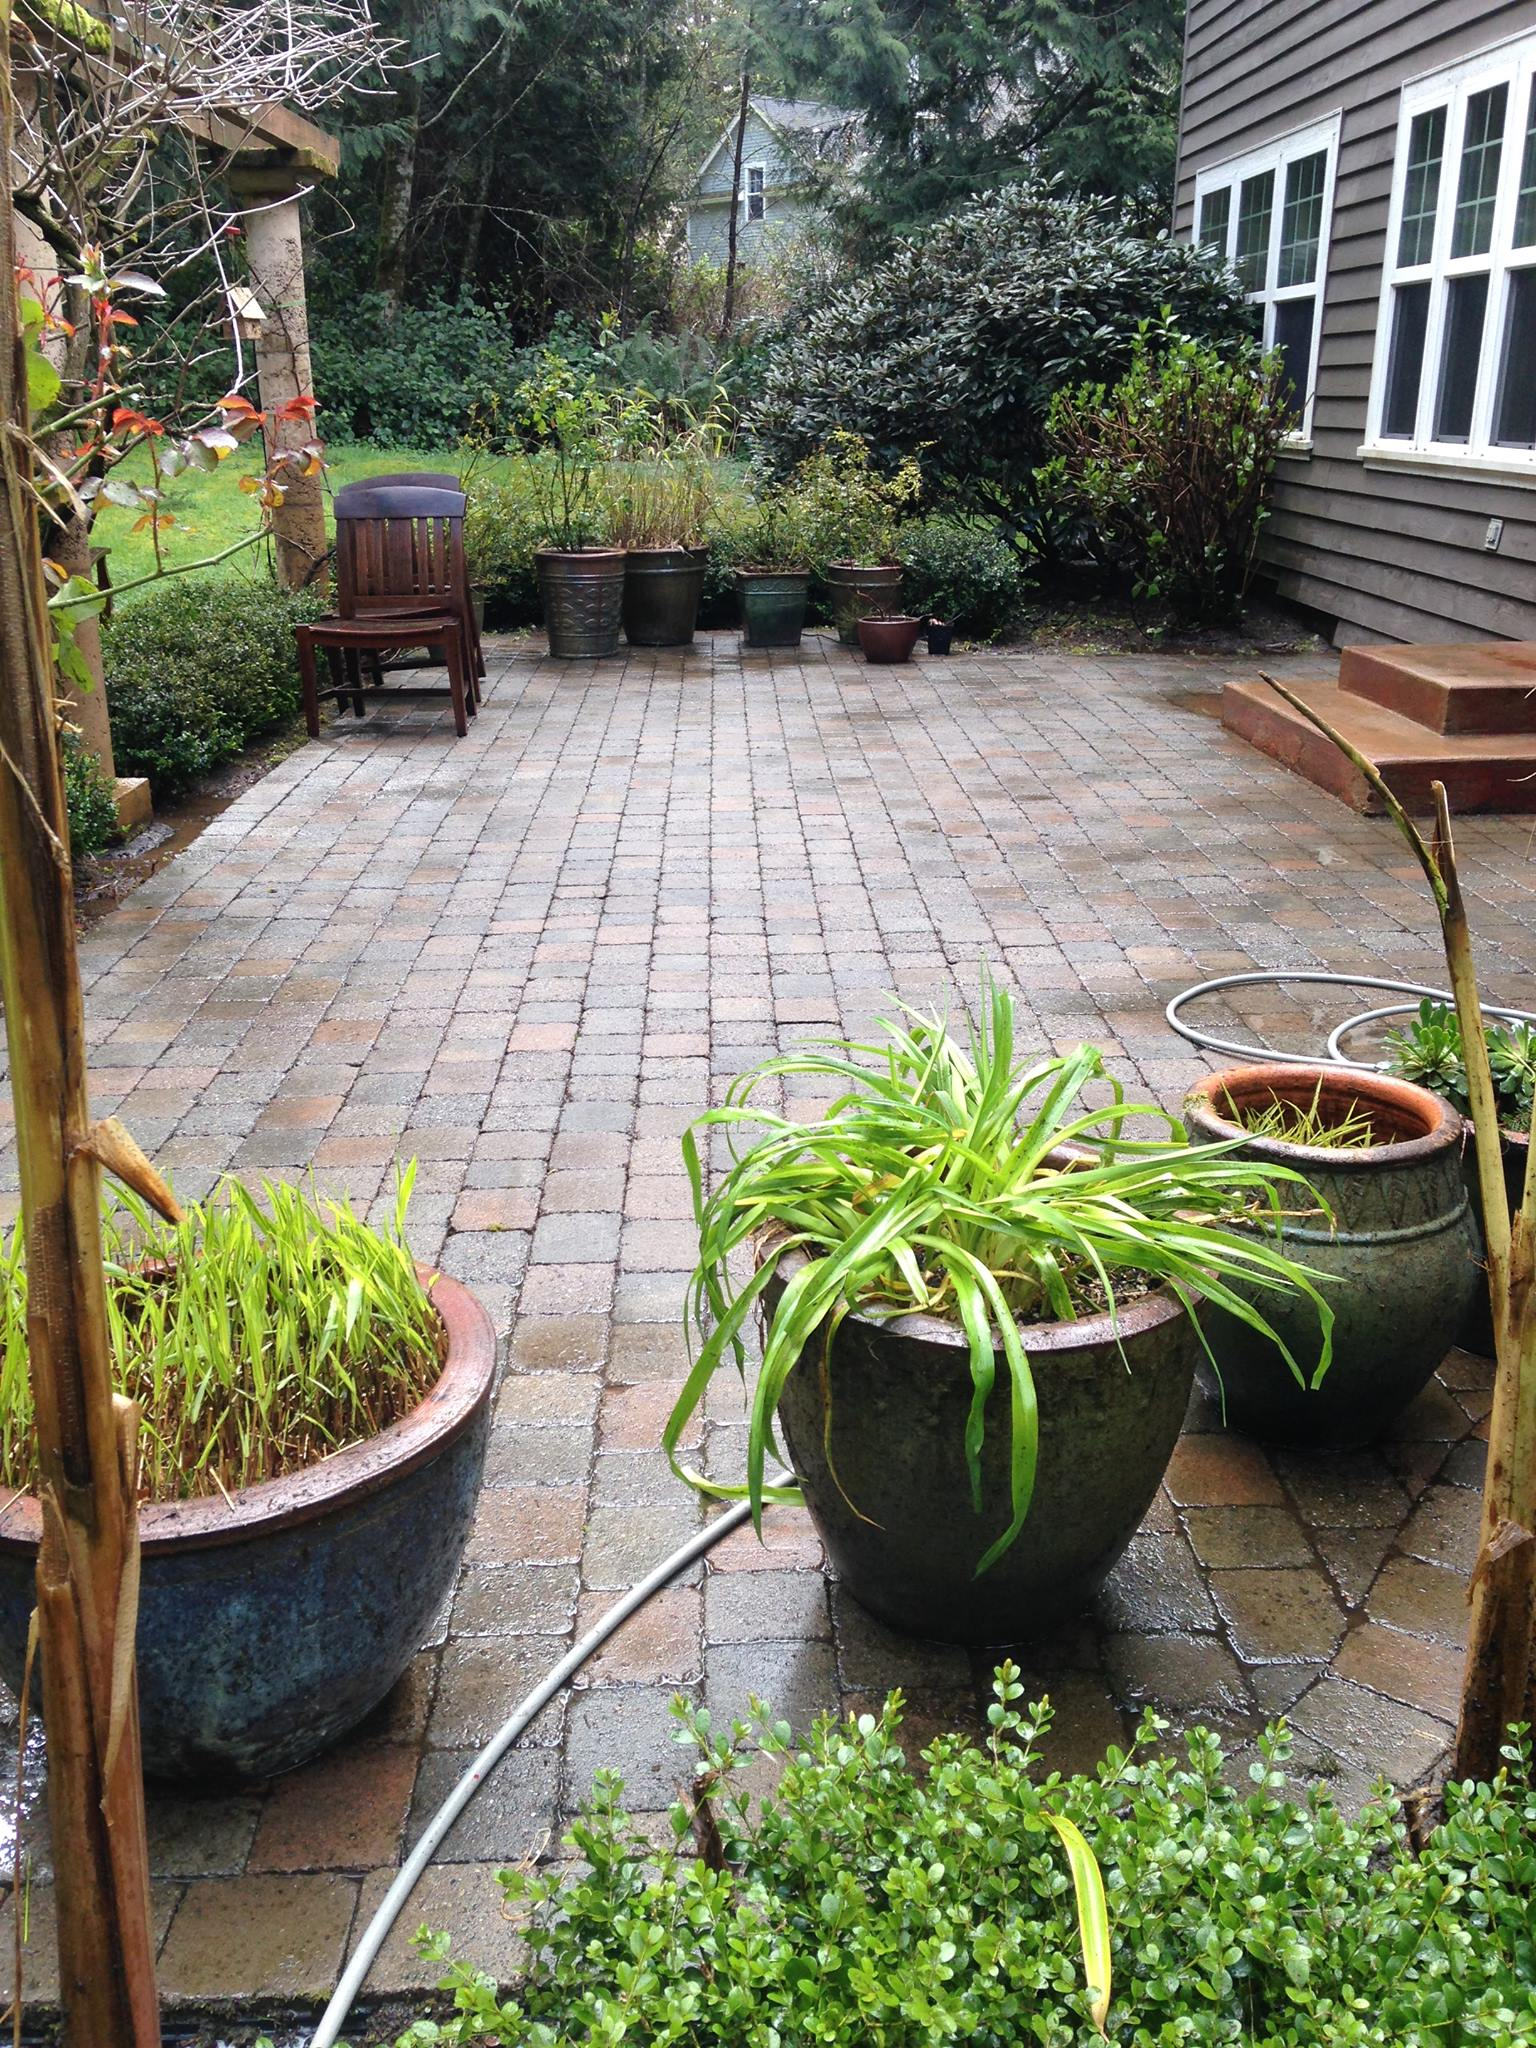 Pation cleaning, after service. We offer patio cleaning, home cleaning services in Seattle at affordable pricing. Try us now